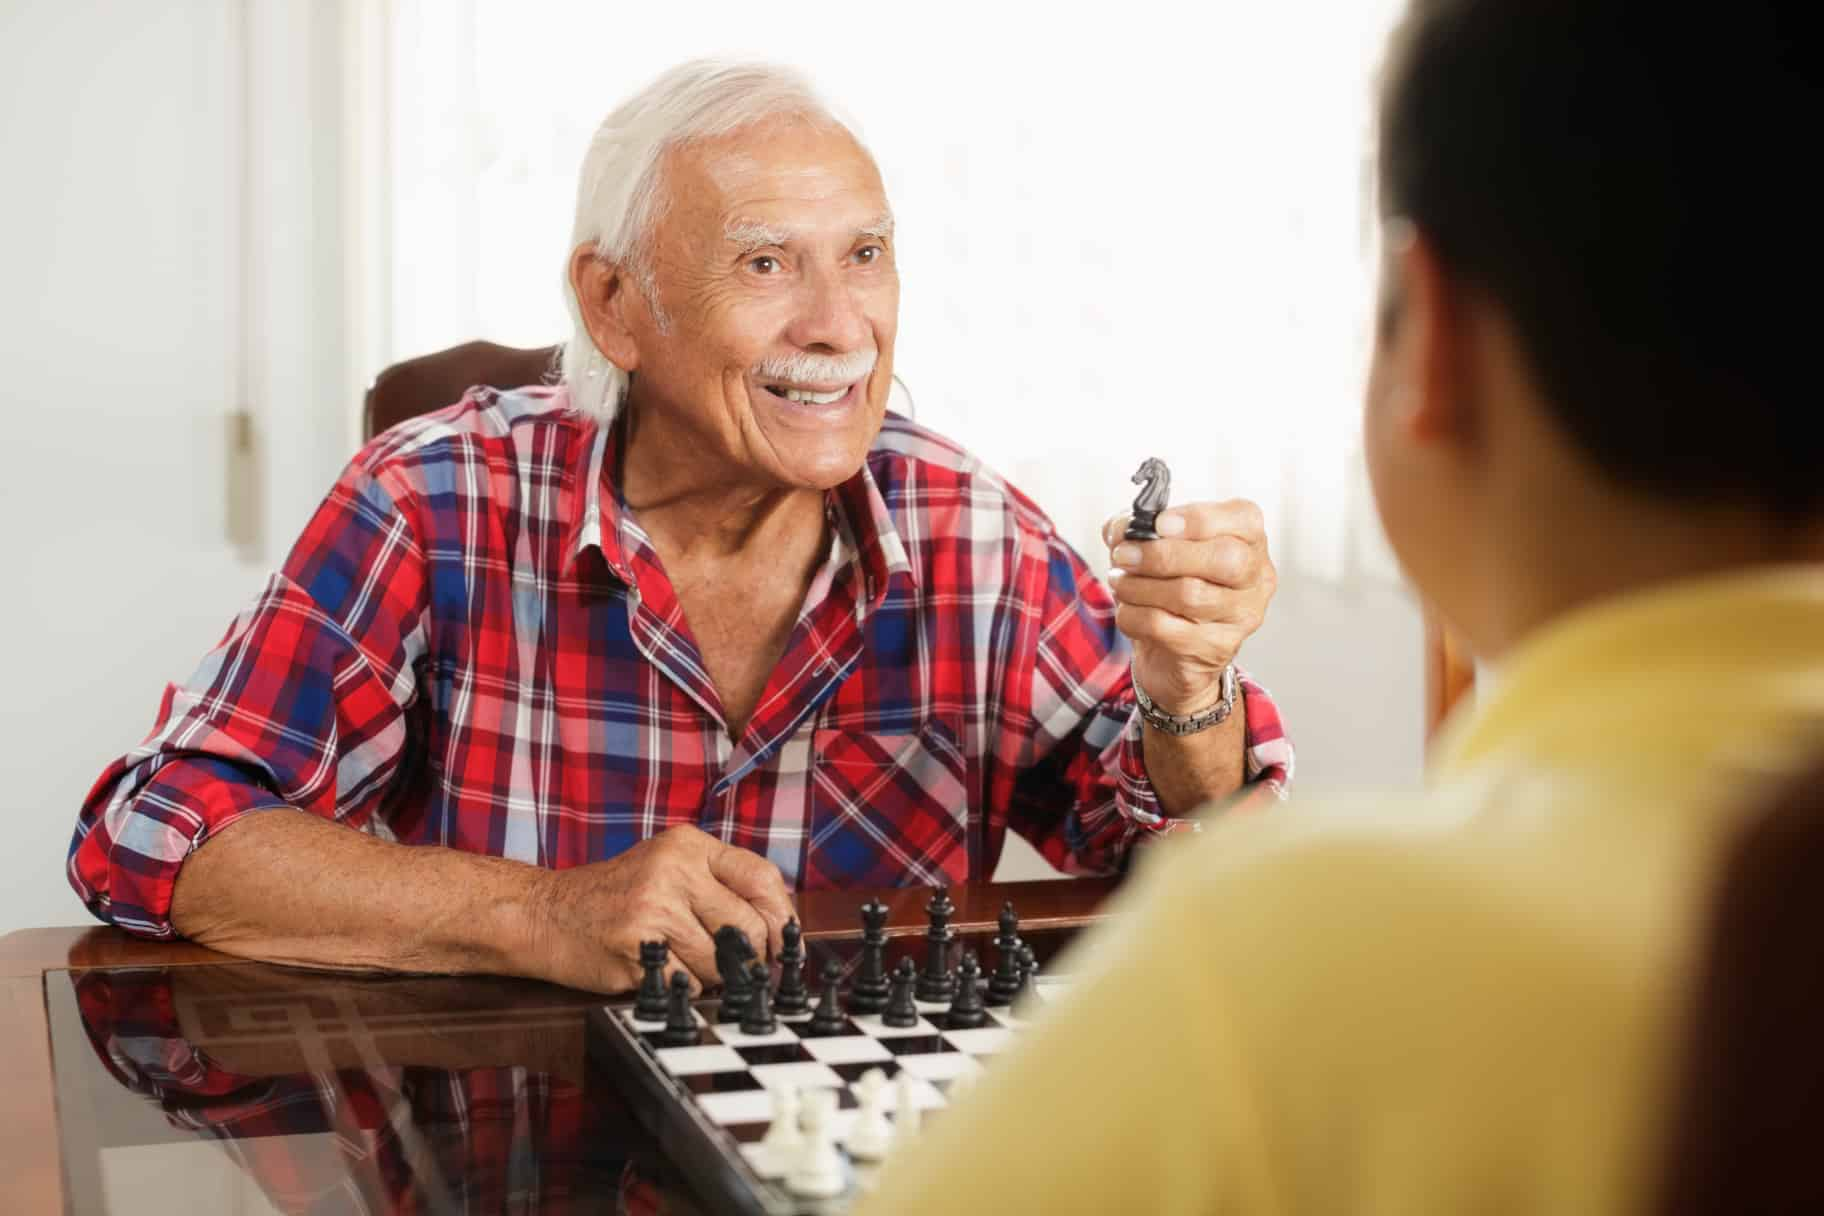 Managing Expectations and Mindset With New Dentures